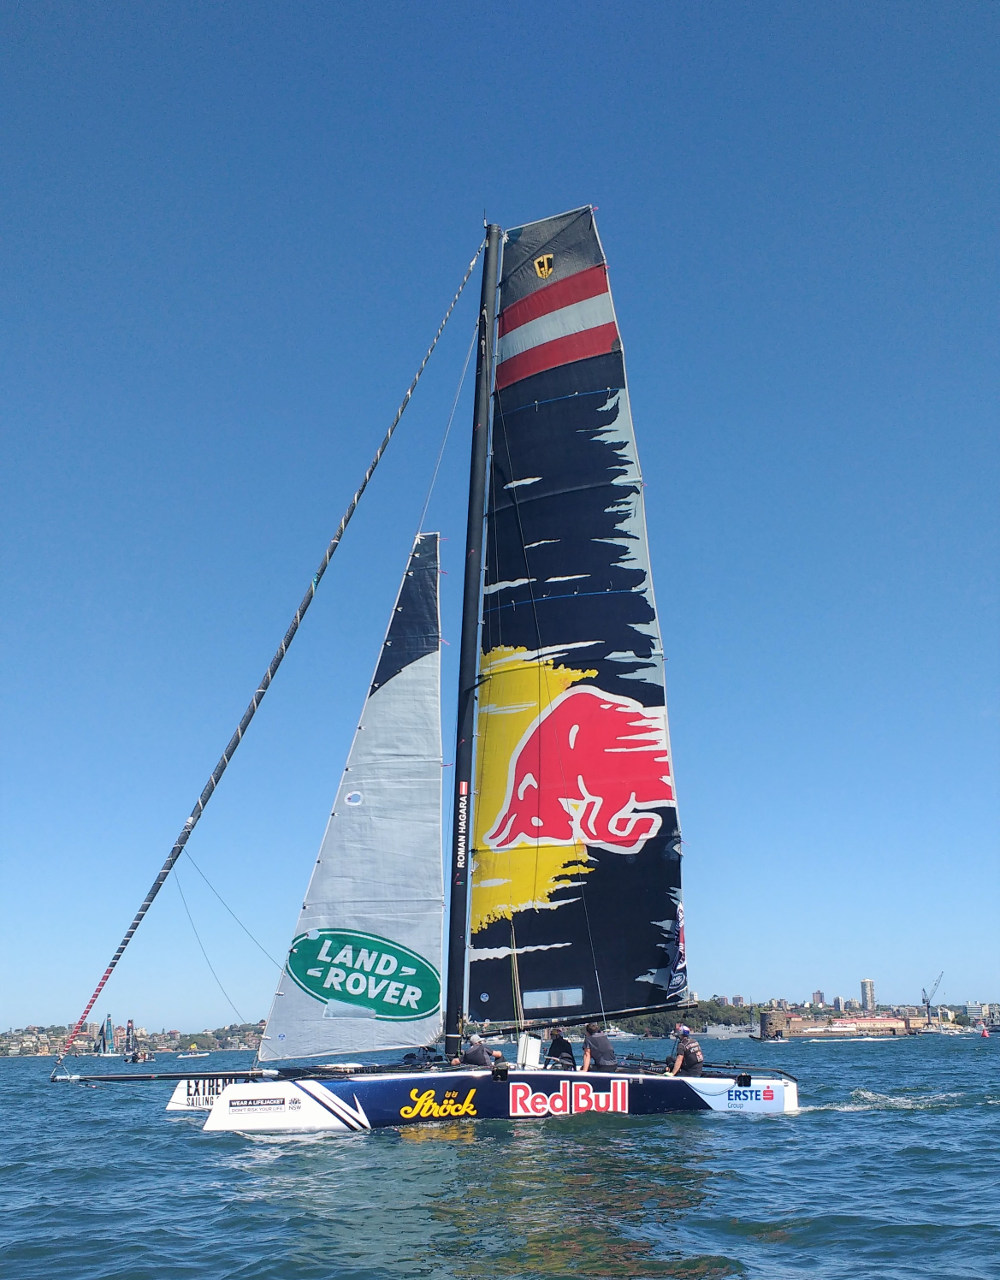 The Red Bull Sailing Team fighting for the Extreme Sailing Series win in the last leg at Sydney harbour